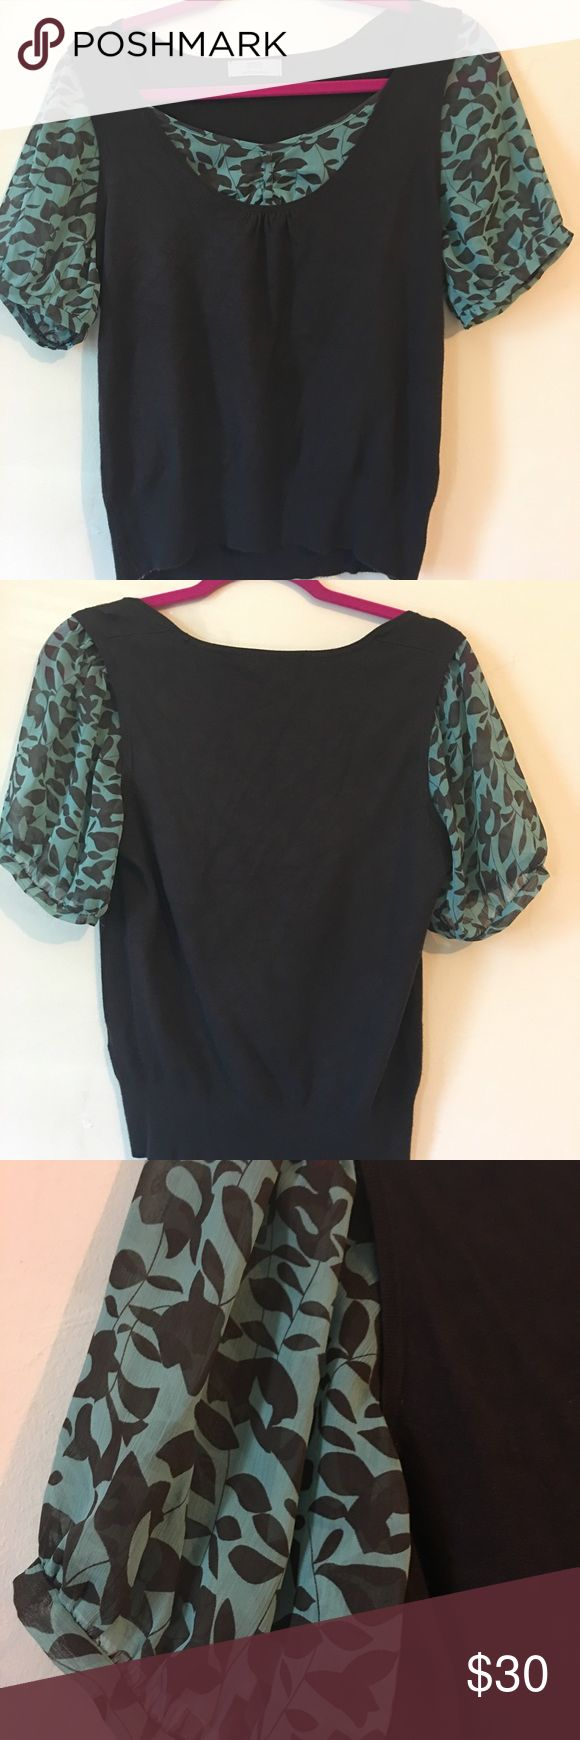 Marks and Spencer Brown Sweater Top Small Made from excellent quality material. Gently worn. Marks & Spencer Tops